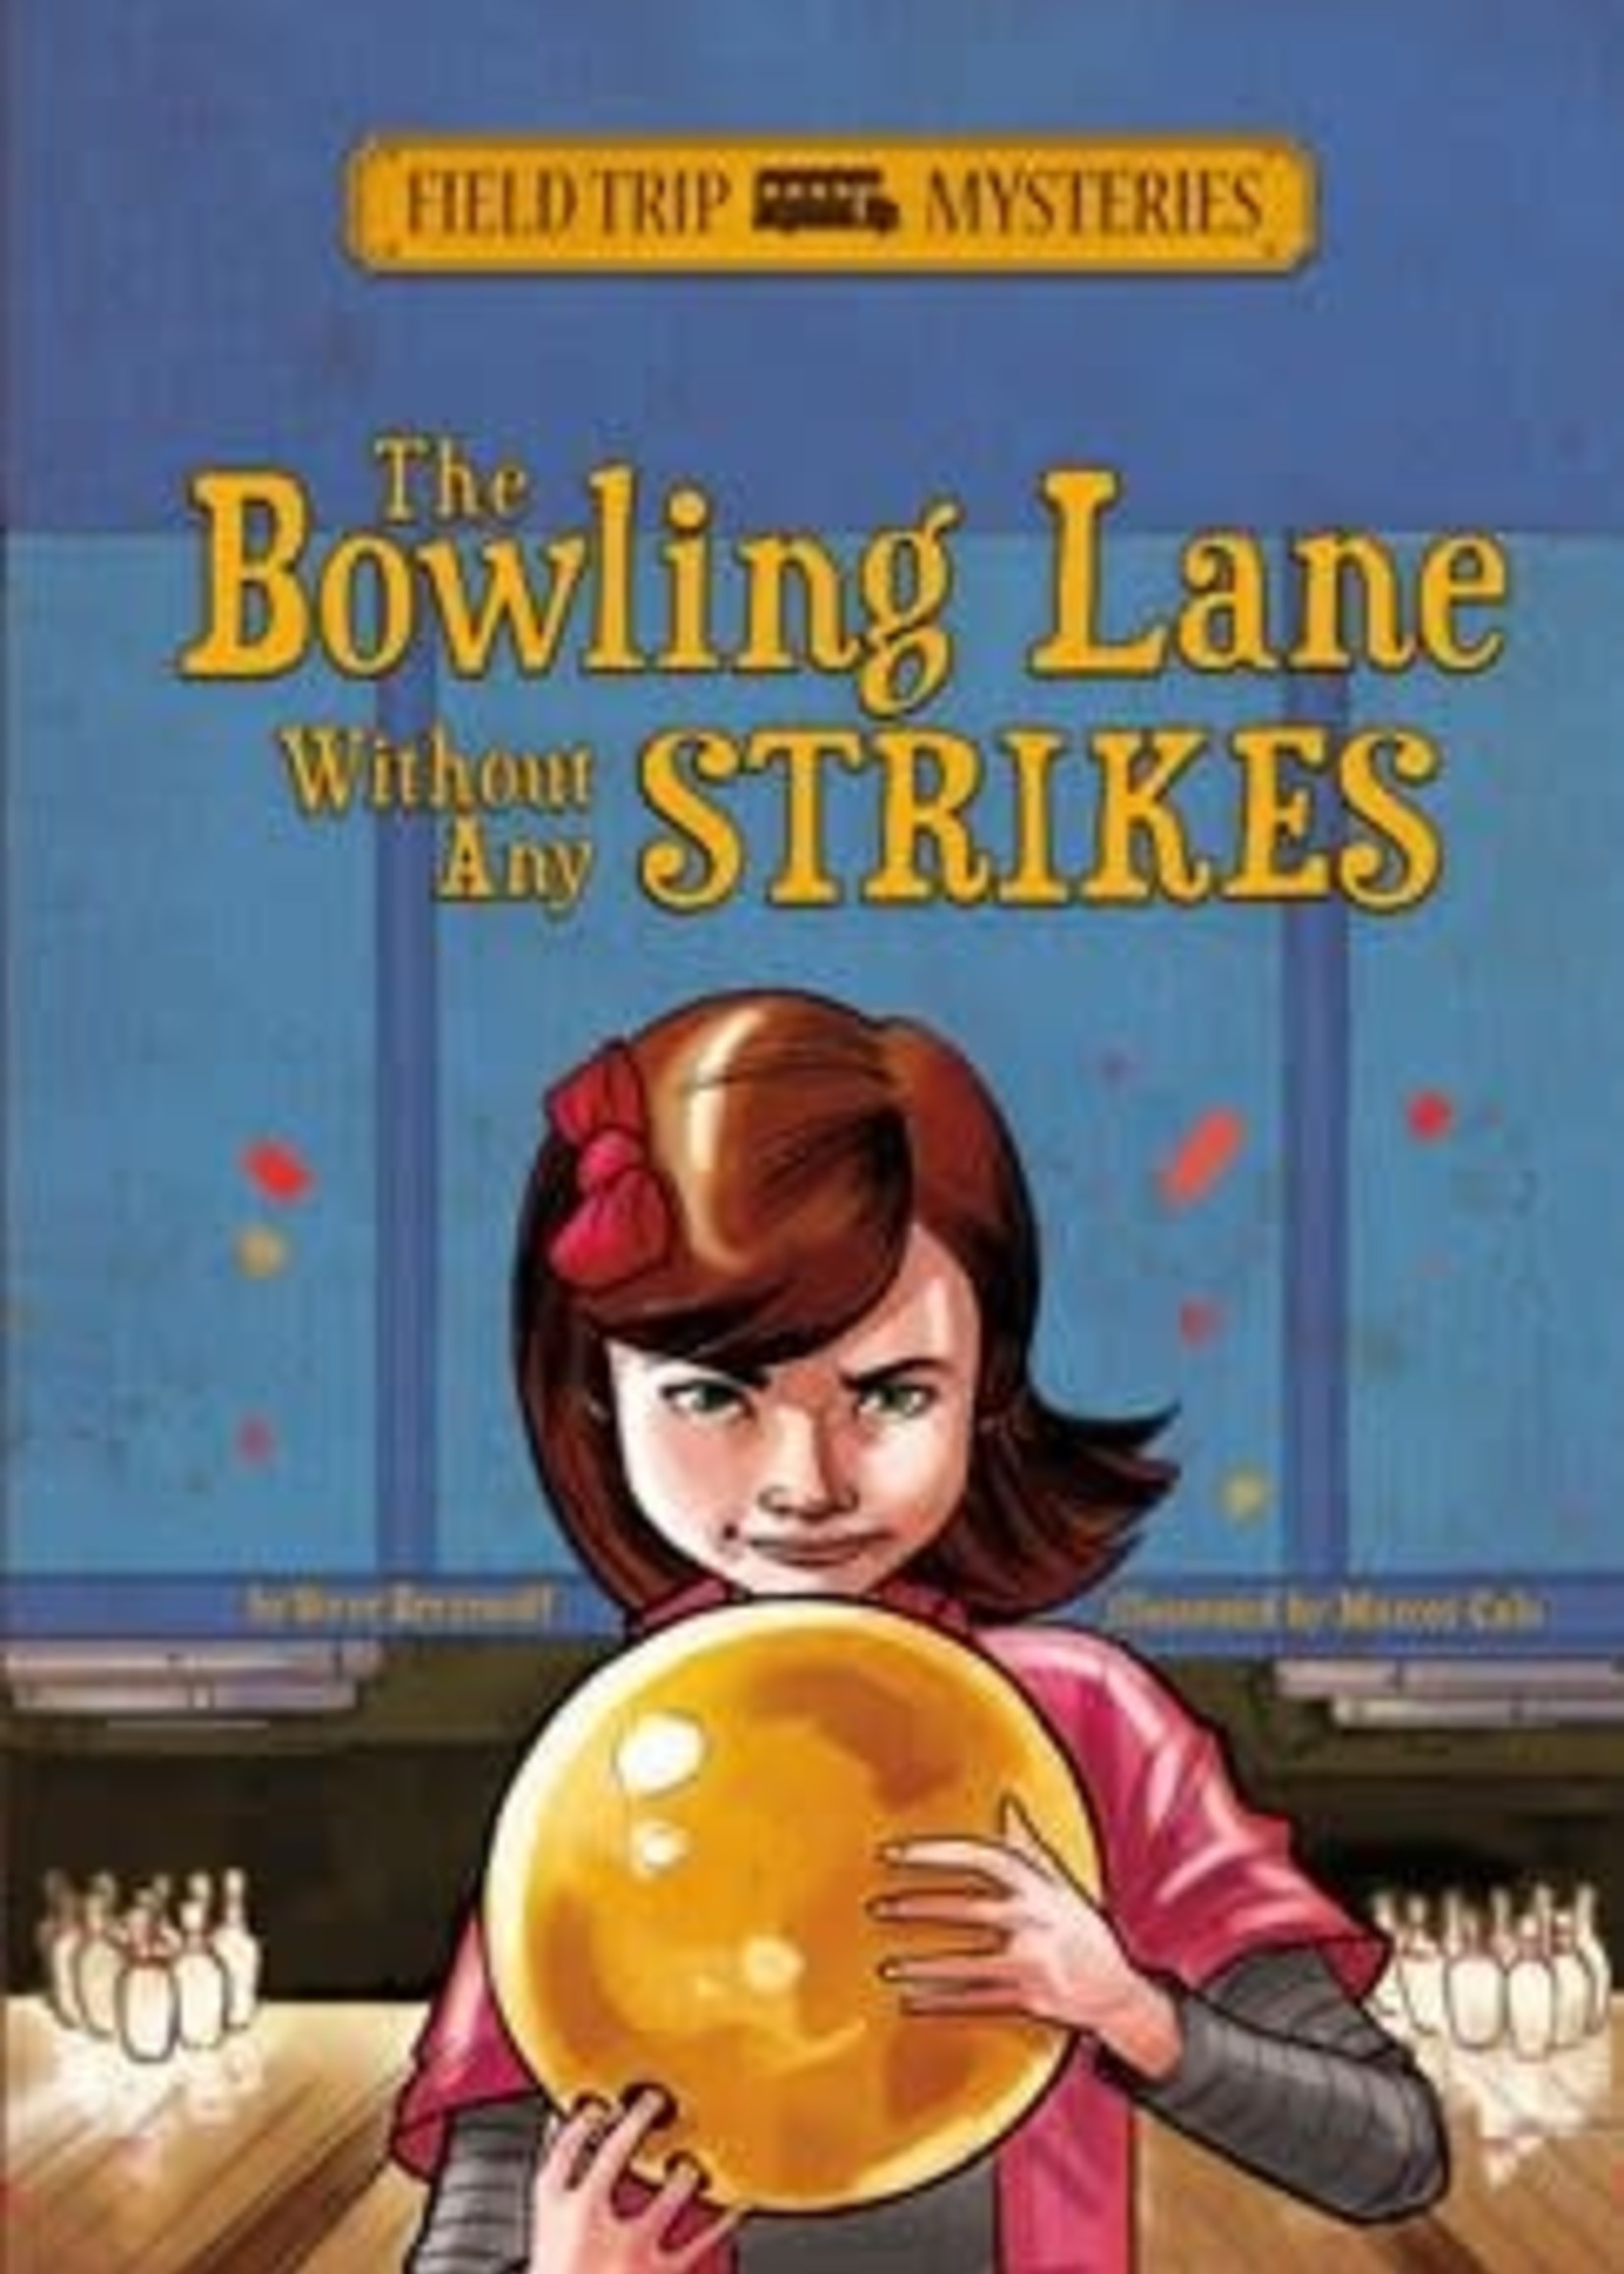 Field Trip Mysteries: The Bowling Lane Without Any Strikes - PB